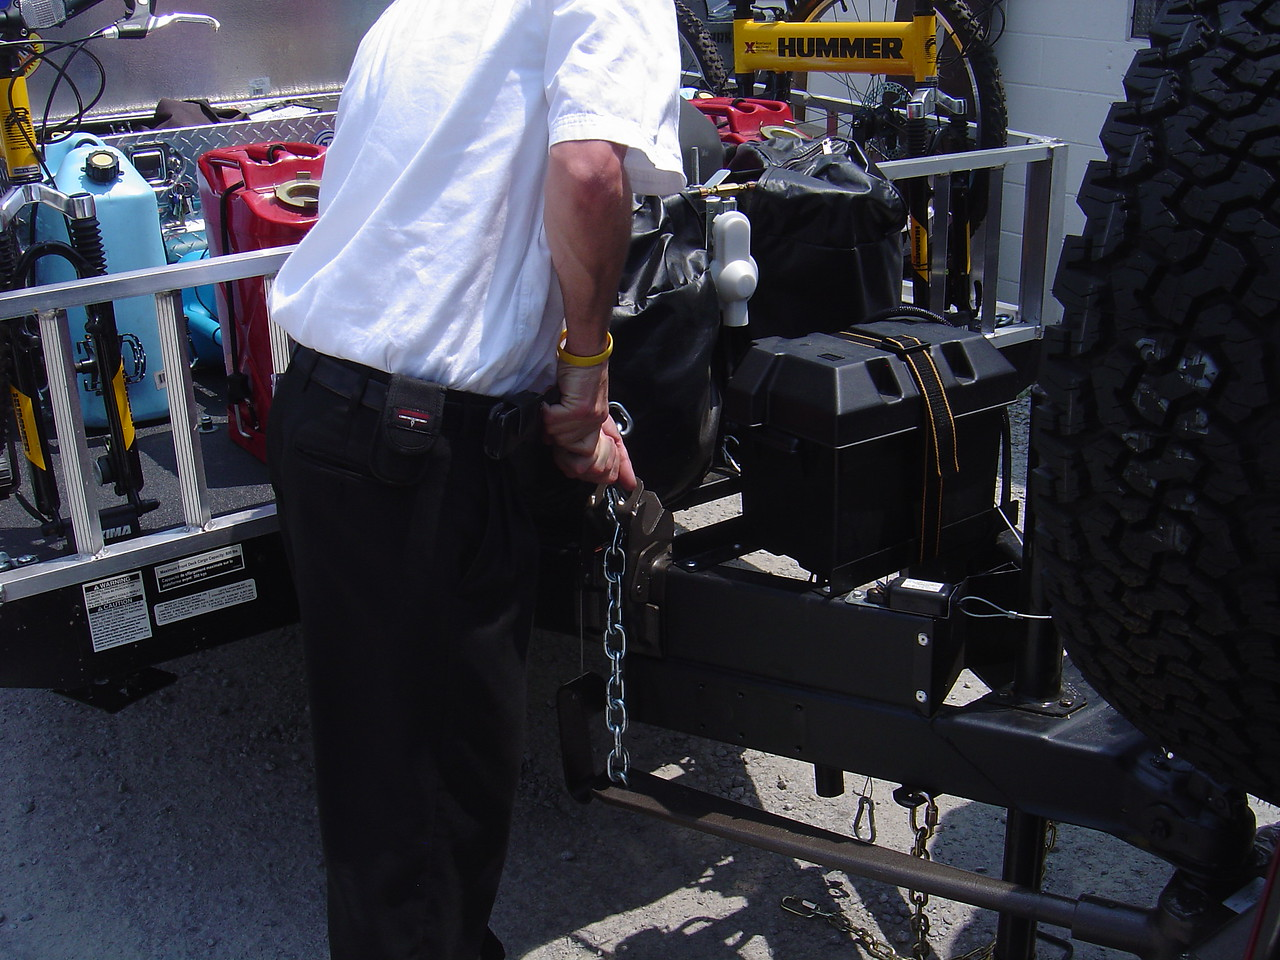 The key to installing was to make sure the chains were long enough so the bars would be under the A frame.